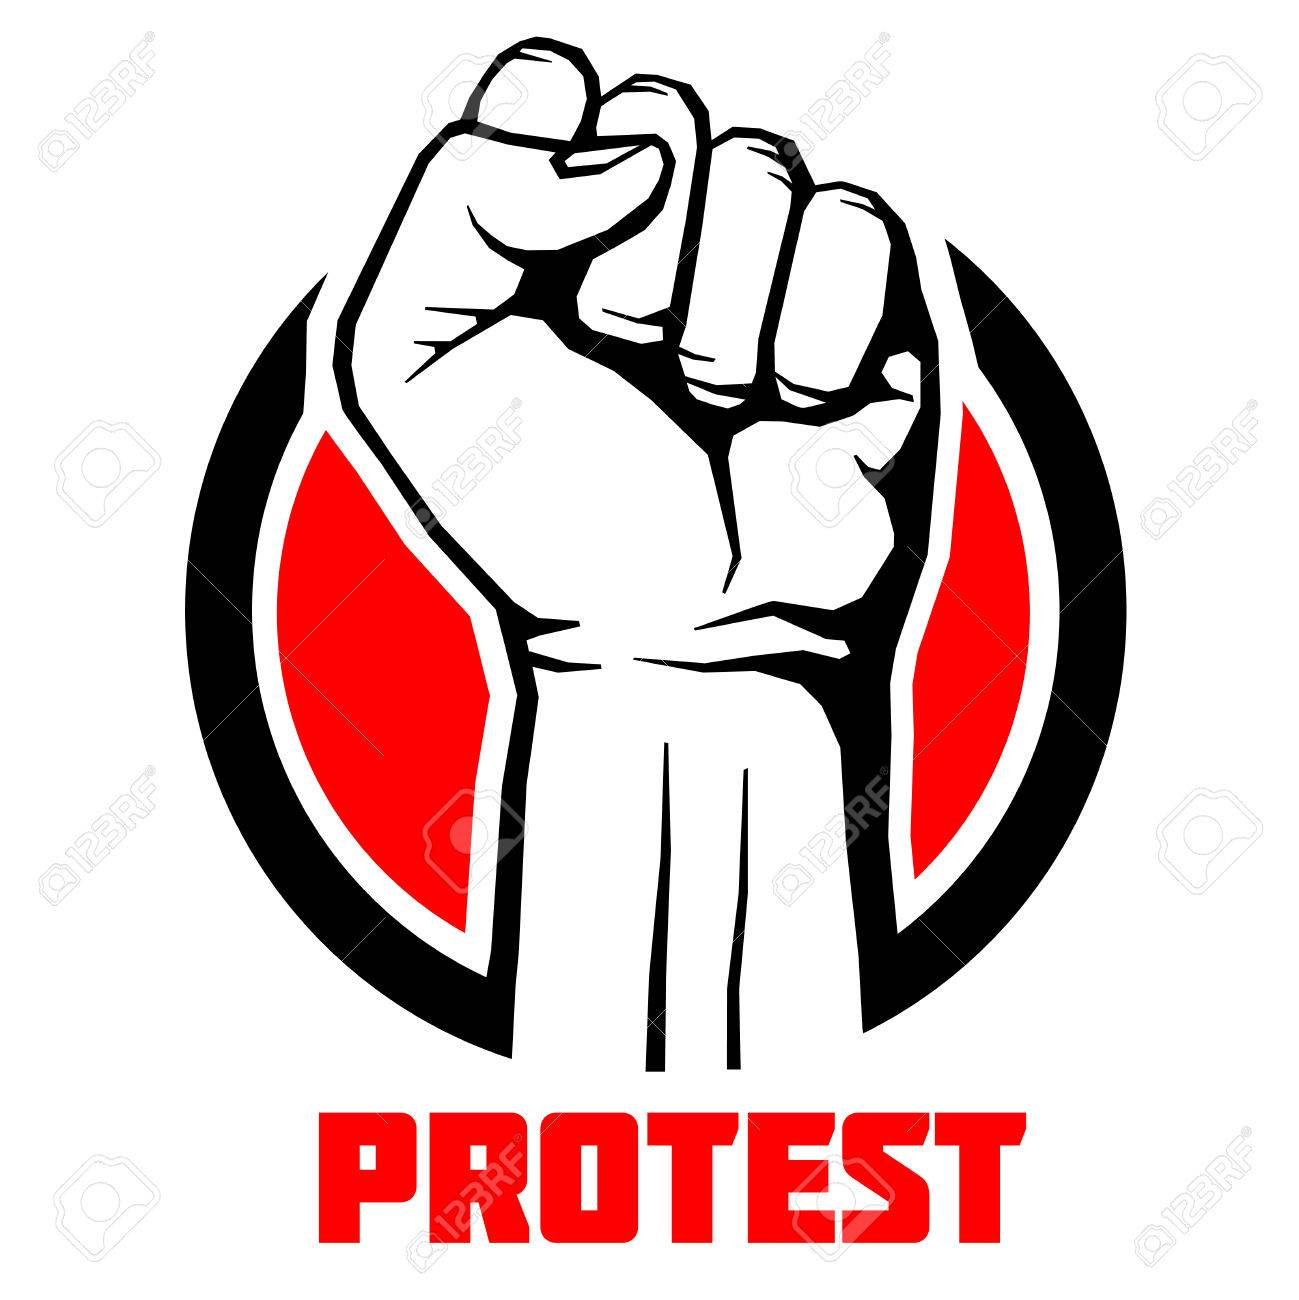 1299x1300 Protest, Rebel Vector Revolution Art Poster Background. Symbol